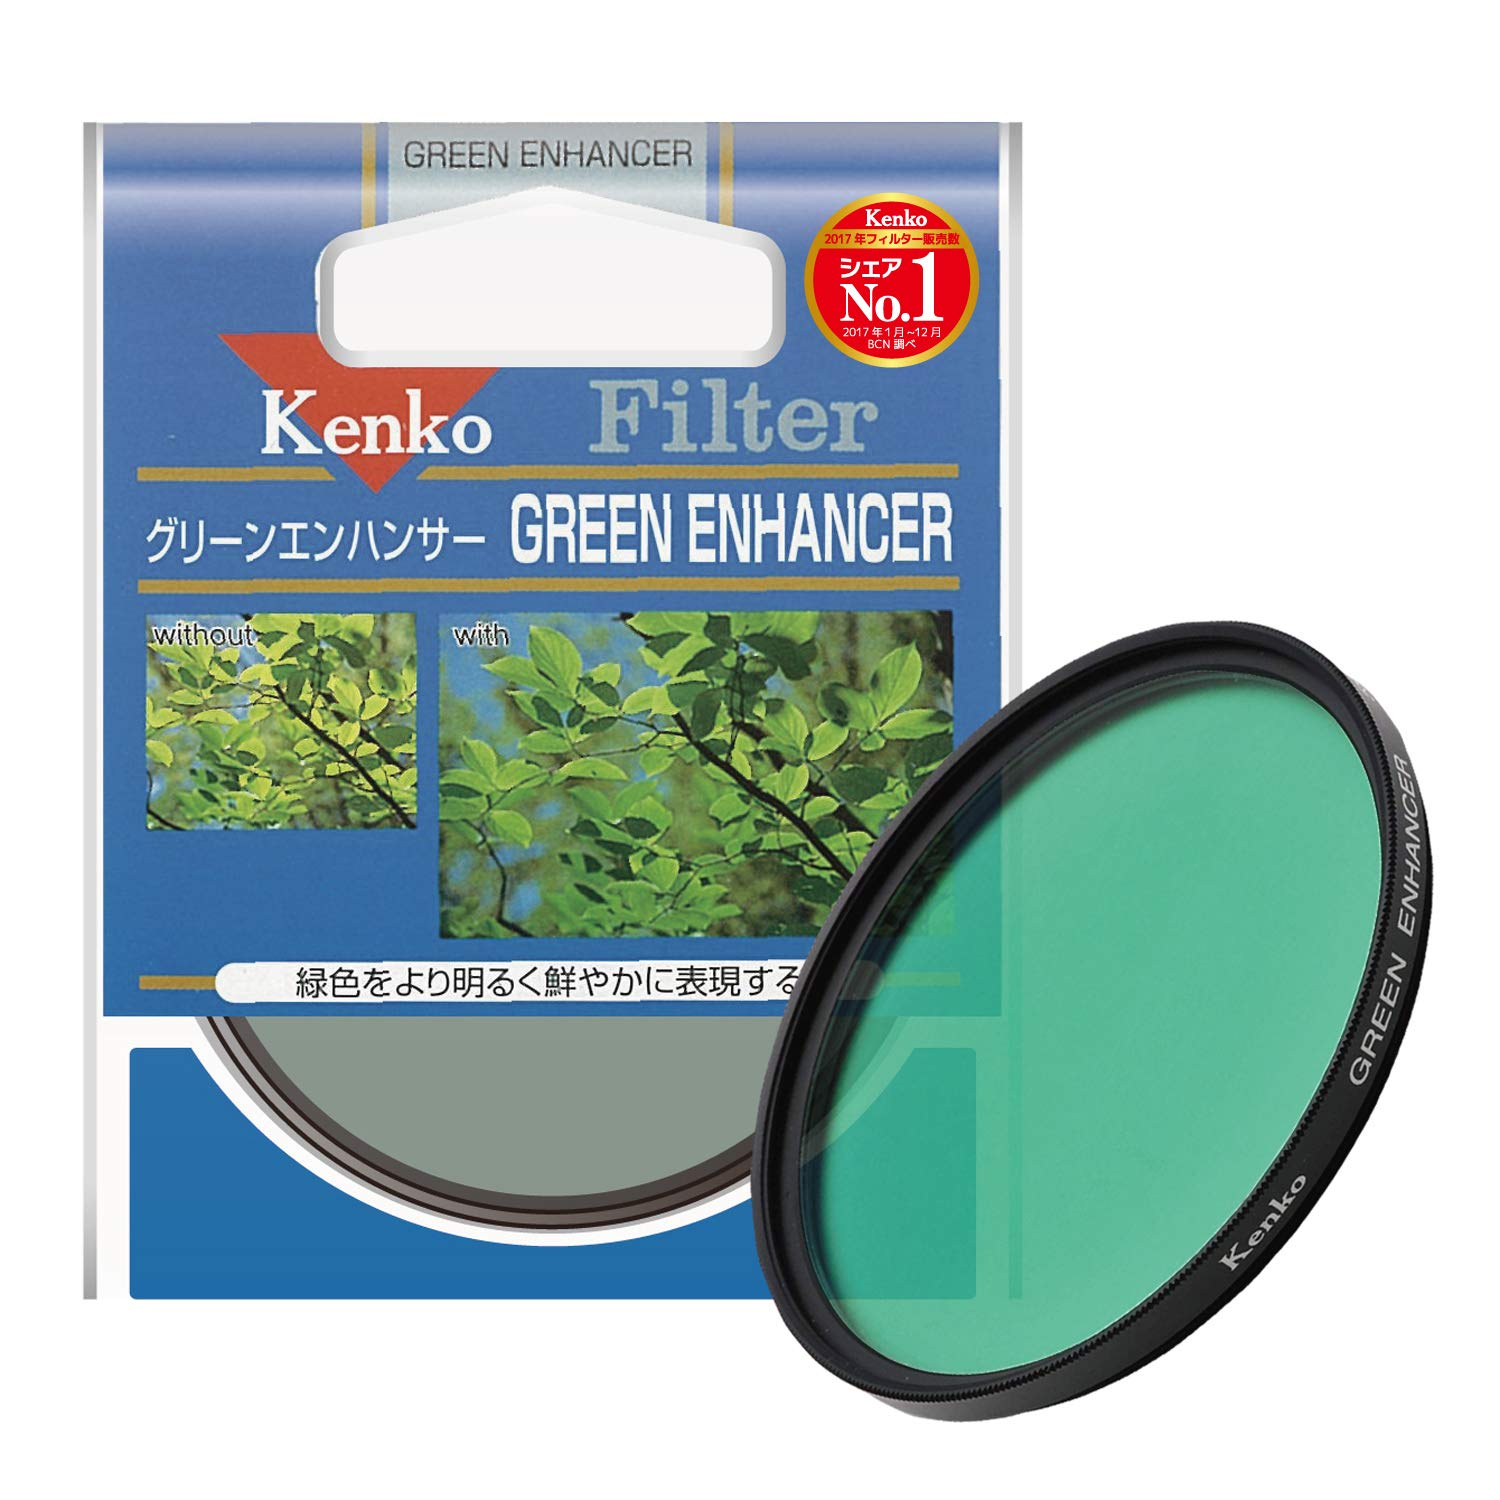 Kenko 82mm Green Enhancer Camera Lens Filters by Kenko